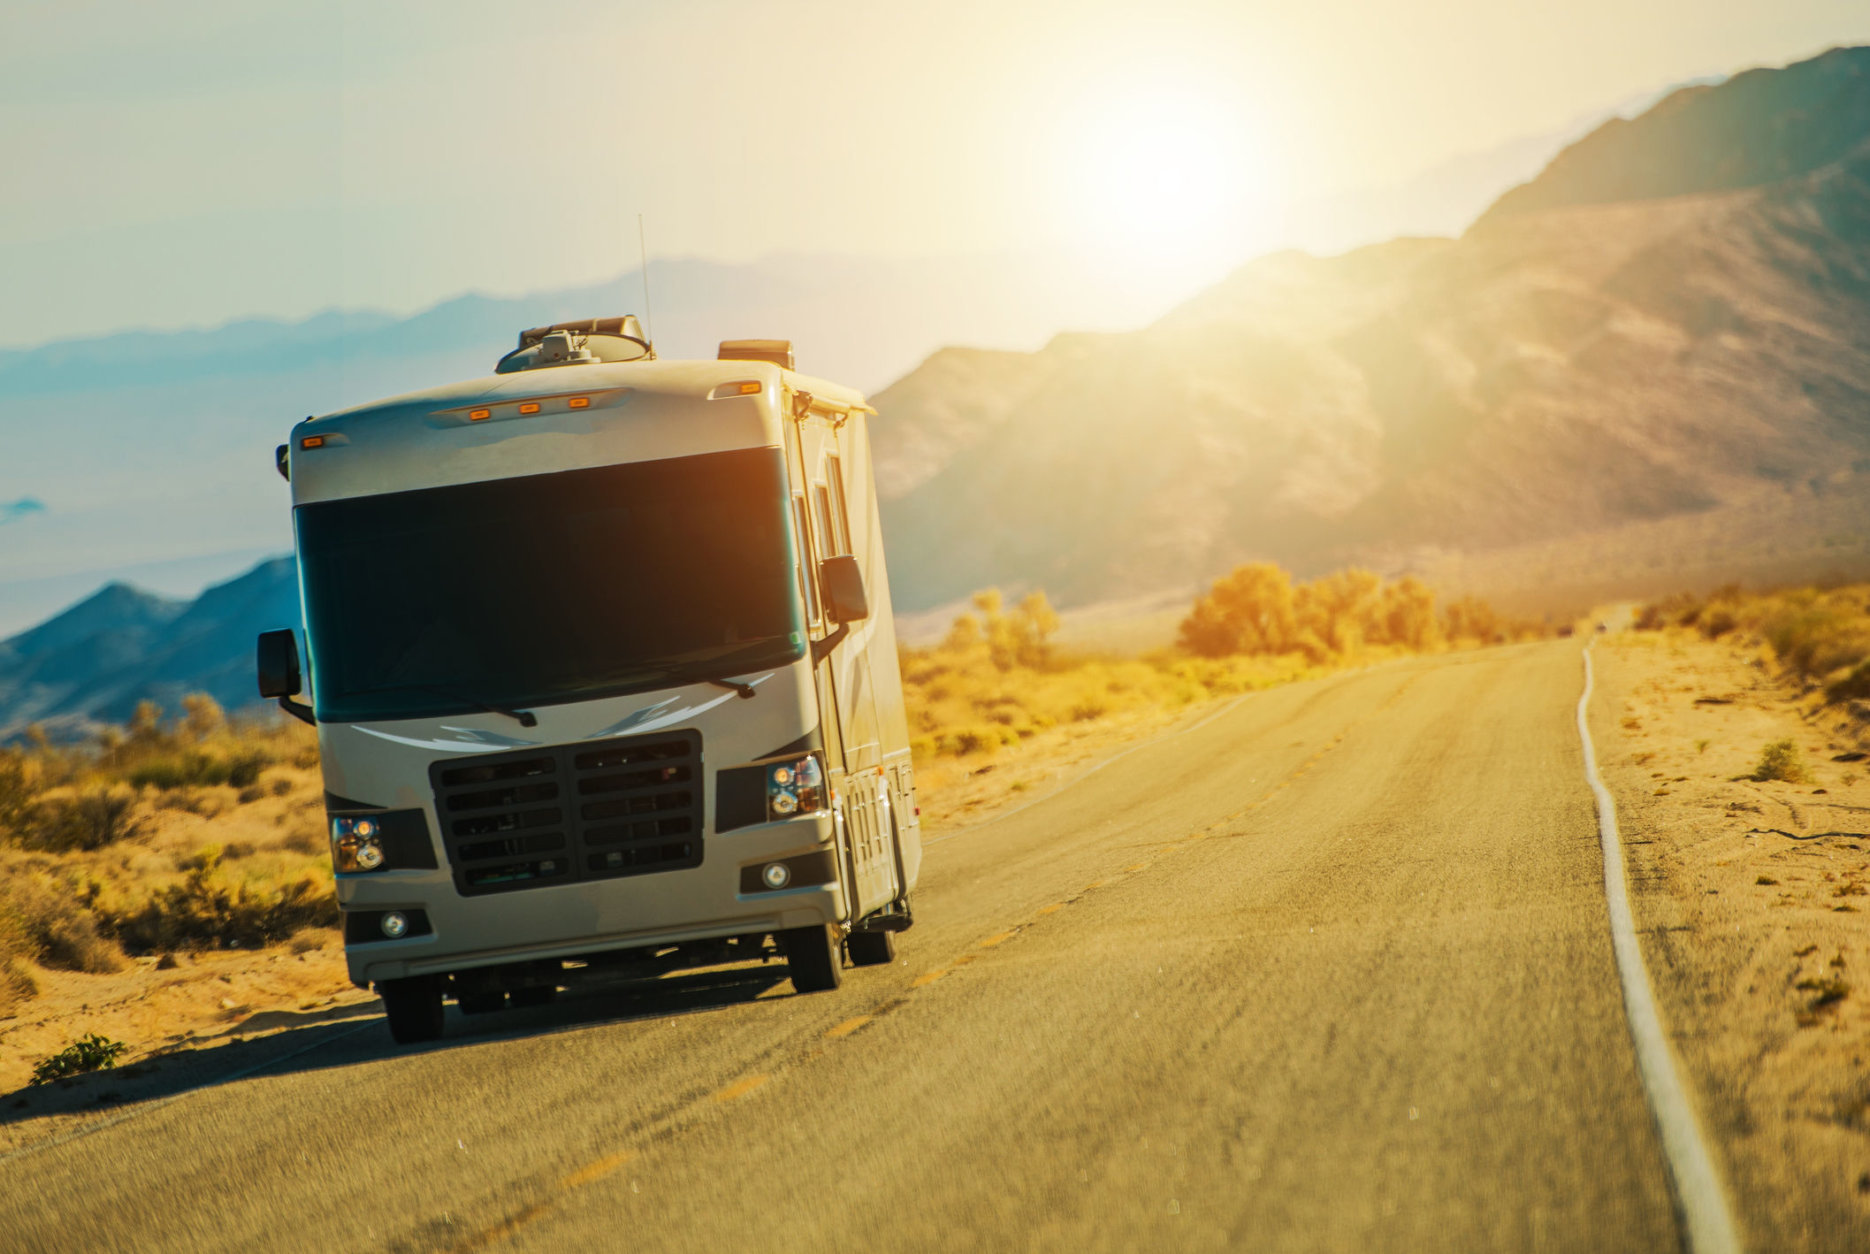 Motorhome on the Desert Road Somewhere in the Southern California Mojave Desert. Class A Gasoline Engine Motorcoach. United States of America. American RVing.